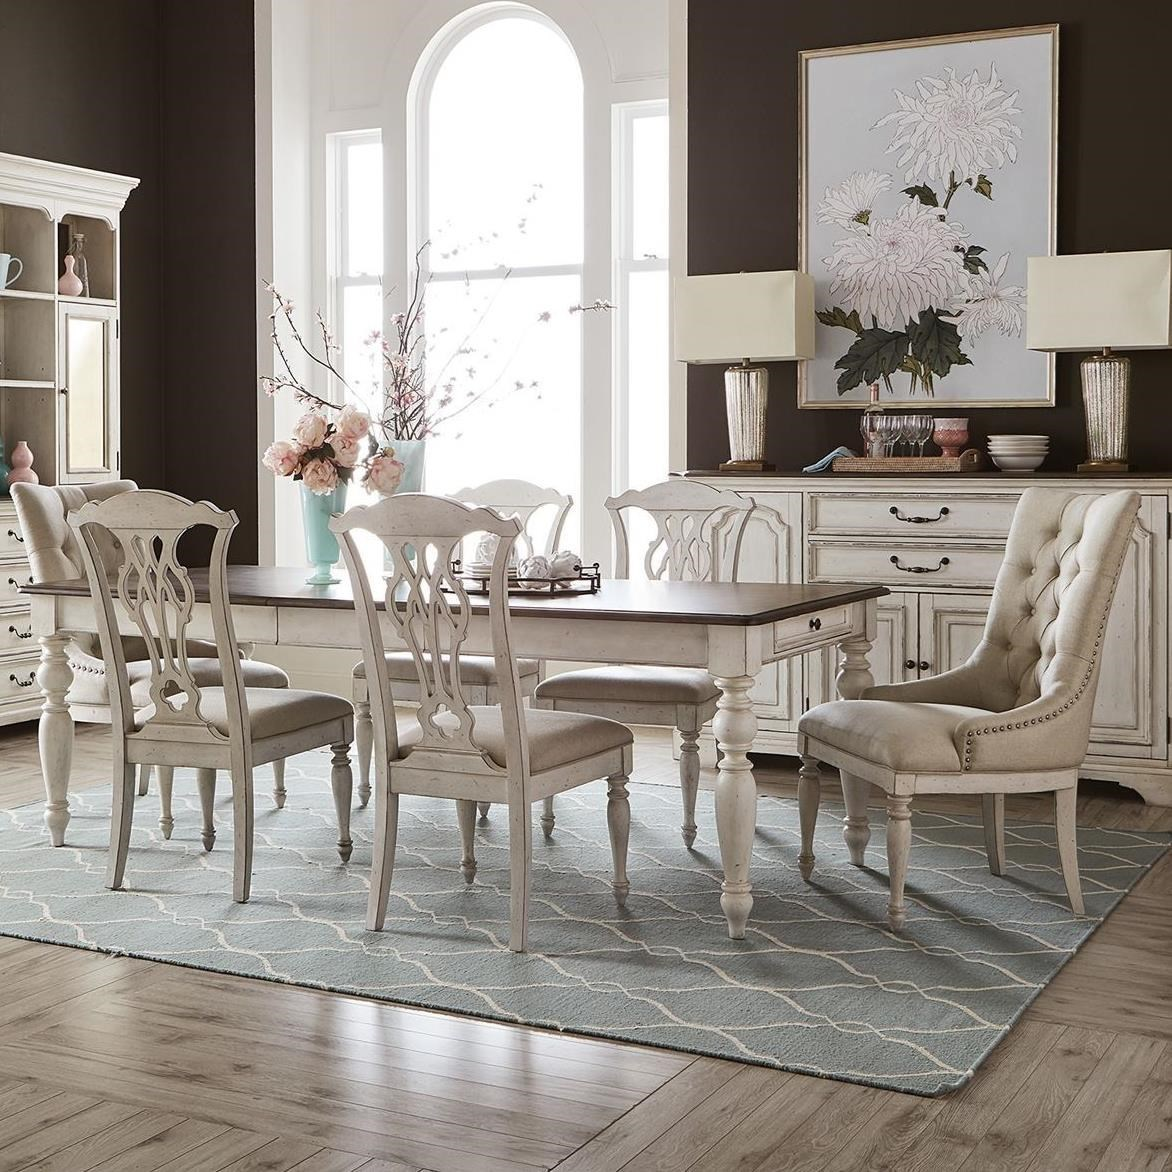 Abbey Road 7-Piece Rectangular Table Set by Liberty Furniture at Dream Home Interiors